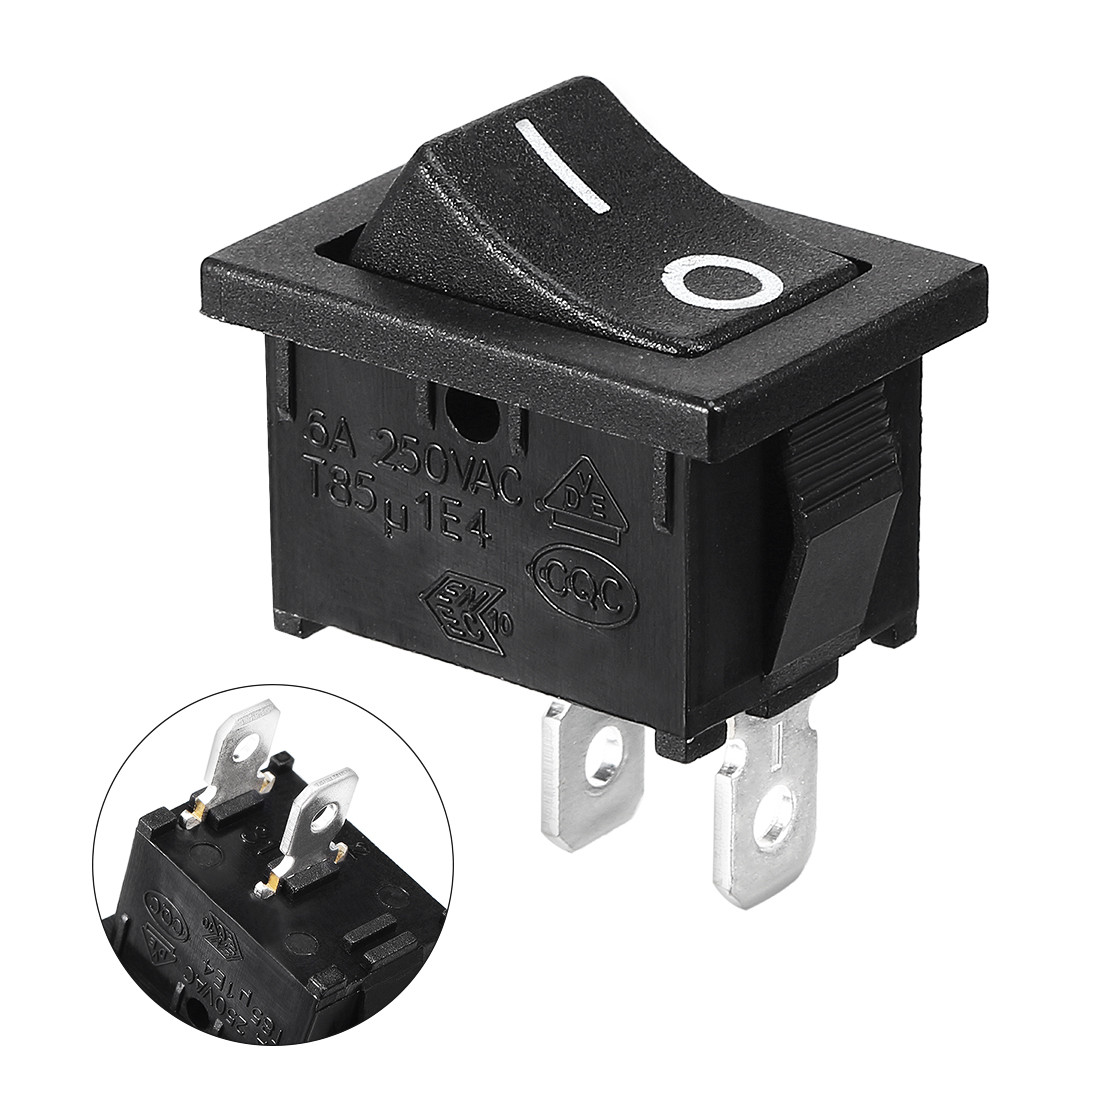 AC 10A/125V 6A/250V ON-OFF I/O 2 Position SPST 2 Pin Snap In Rocker Switch UL Listed